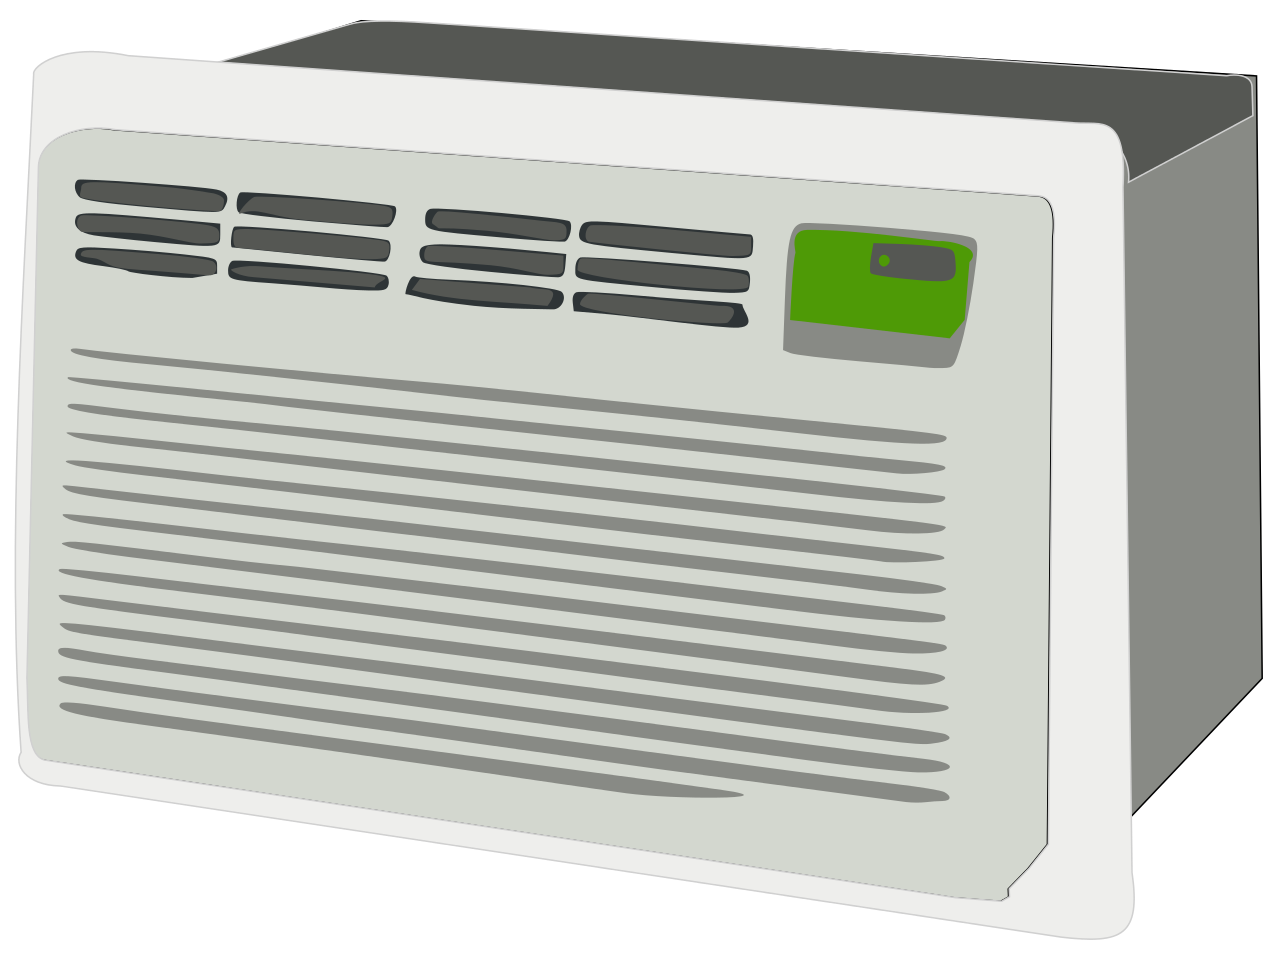 Window air conditioner clipart graphic royalty free library File:Air conditioner.svg - Wikimedia Commons graphic royalty free library